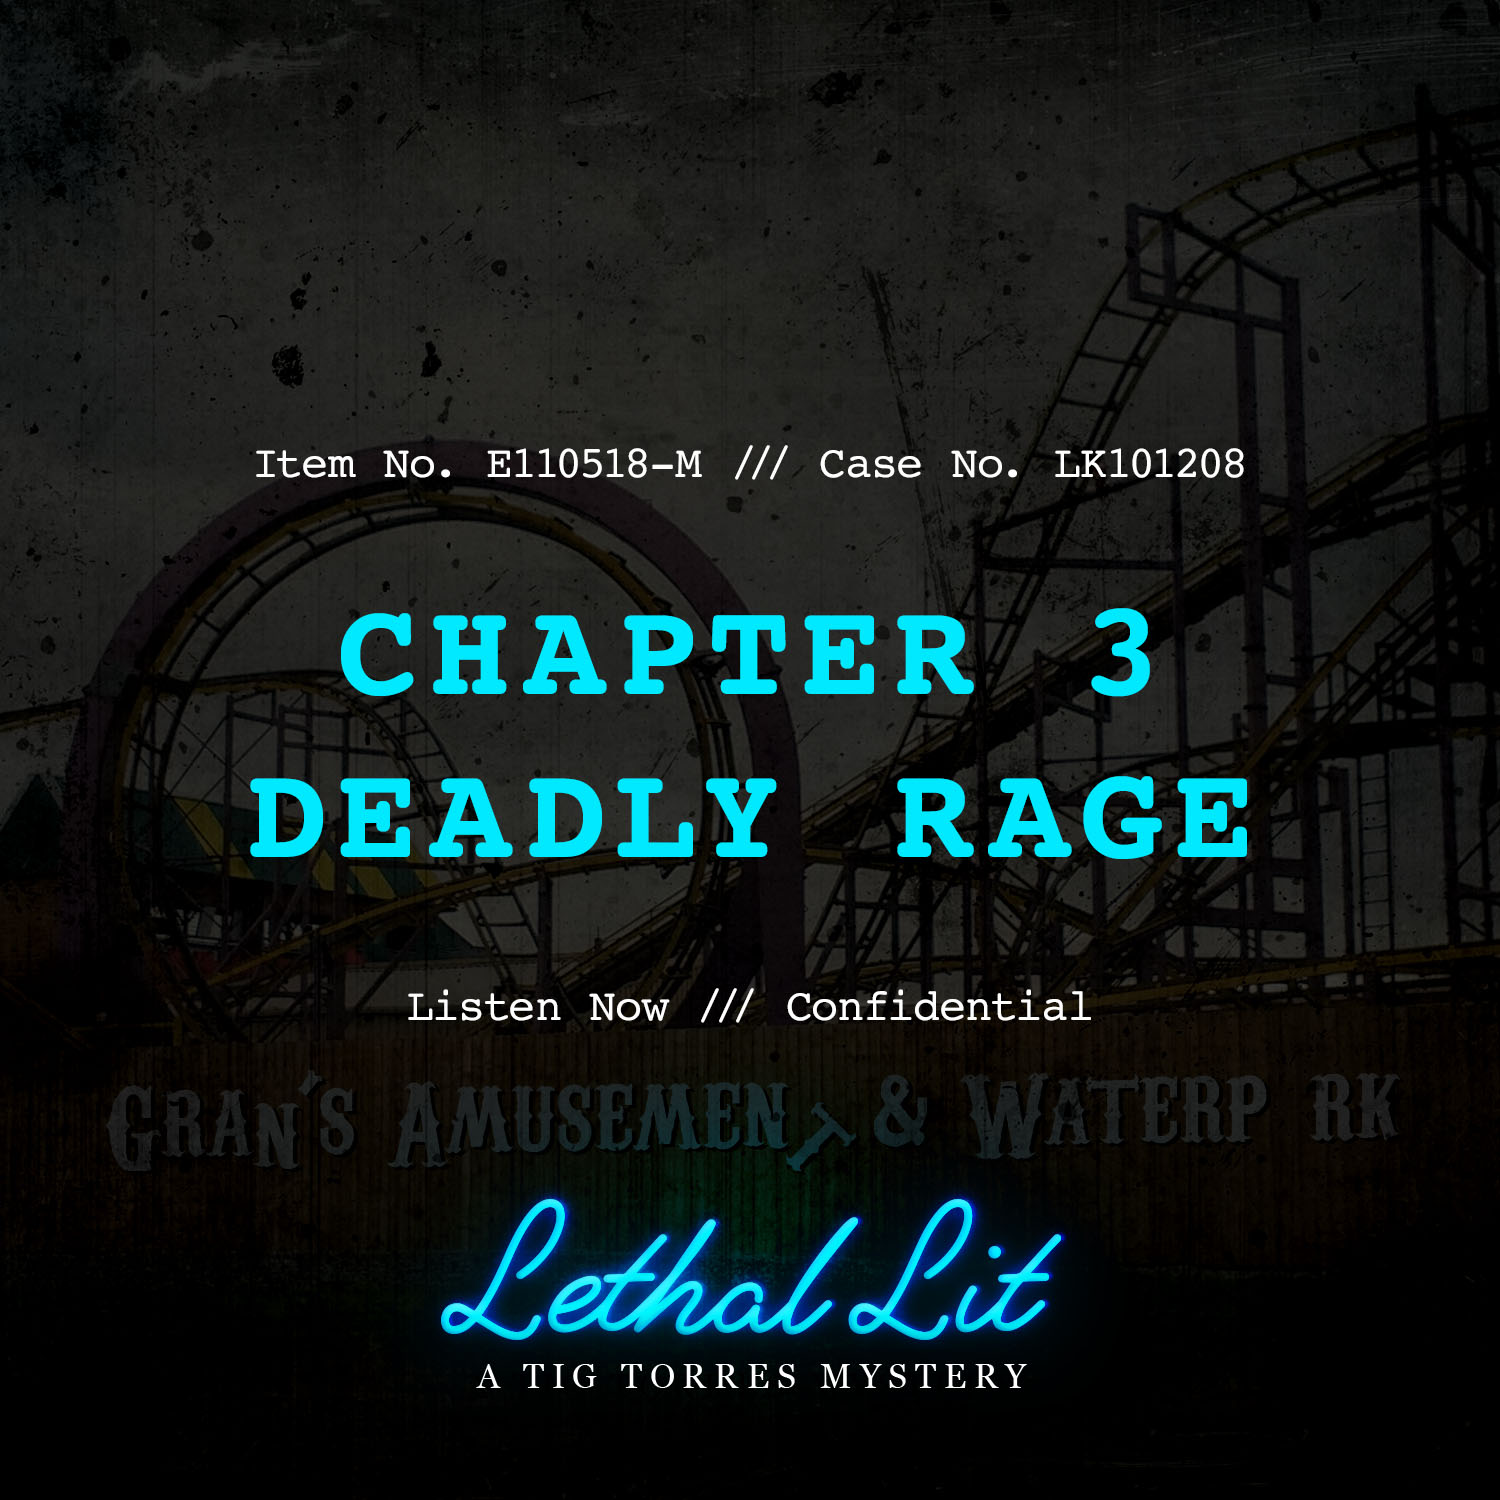 CHAPTER 3: DEADLY RAGE   LINKS TO LISTEN:   IHeart  |  Apple    |  Spotify  |  Stitcher    |    Google